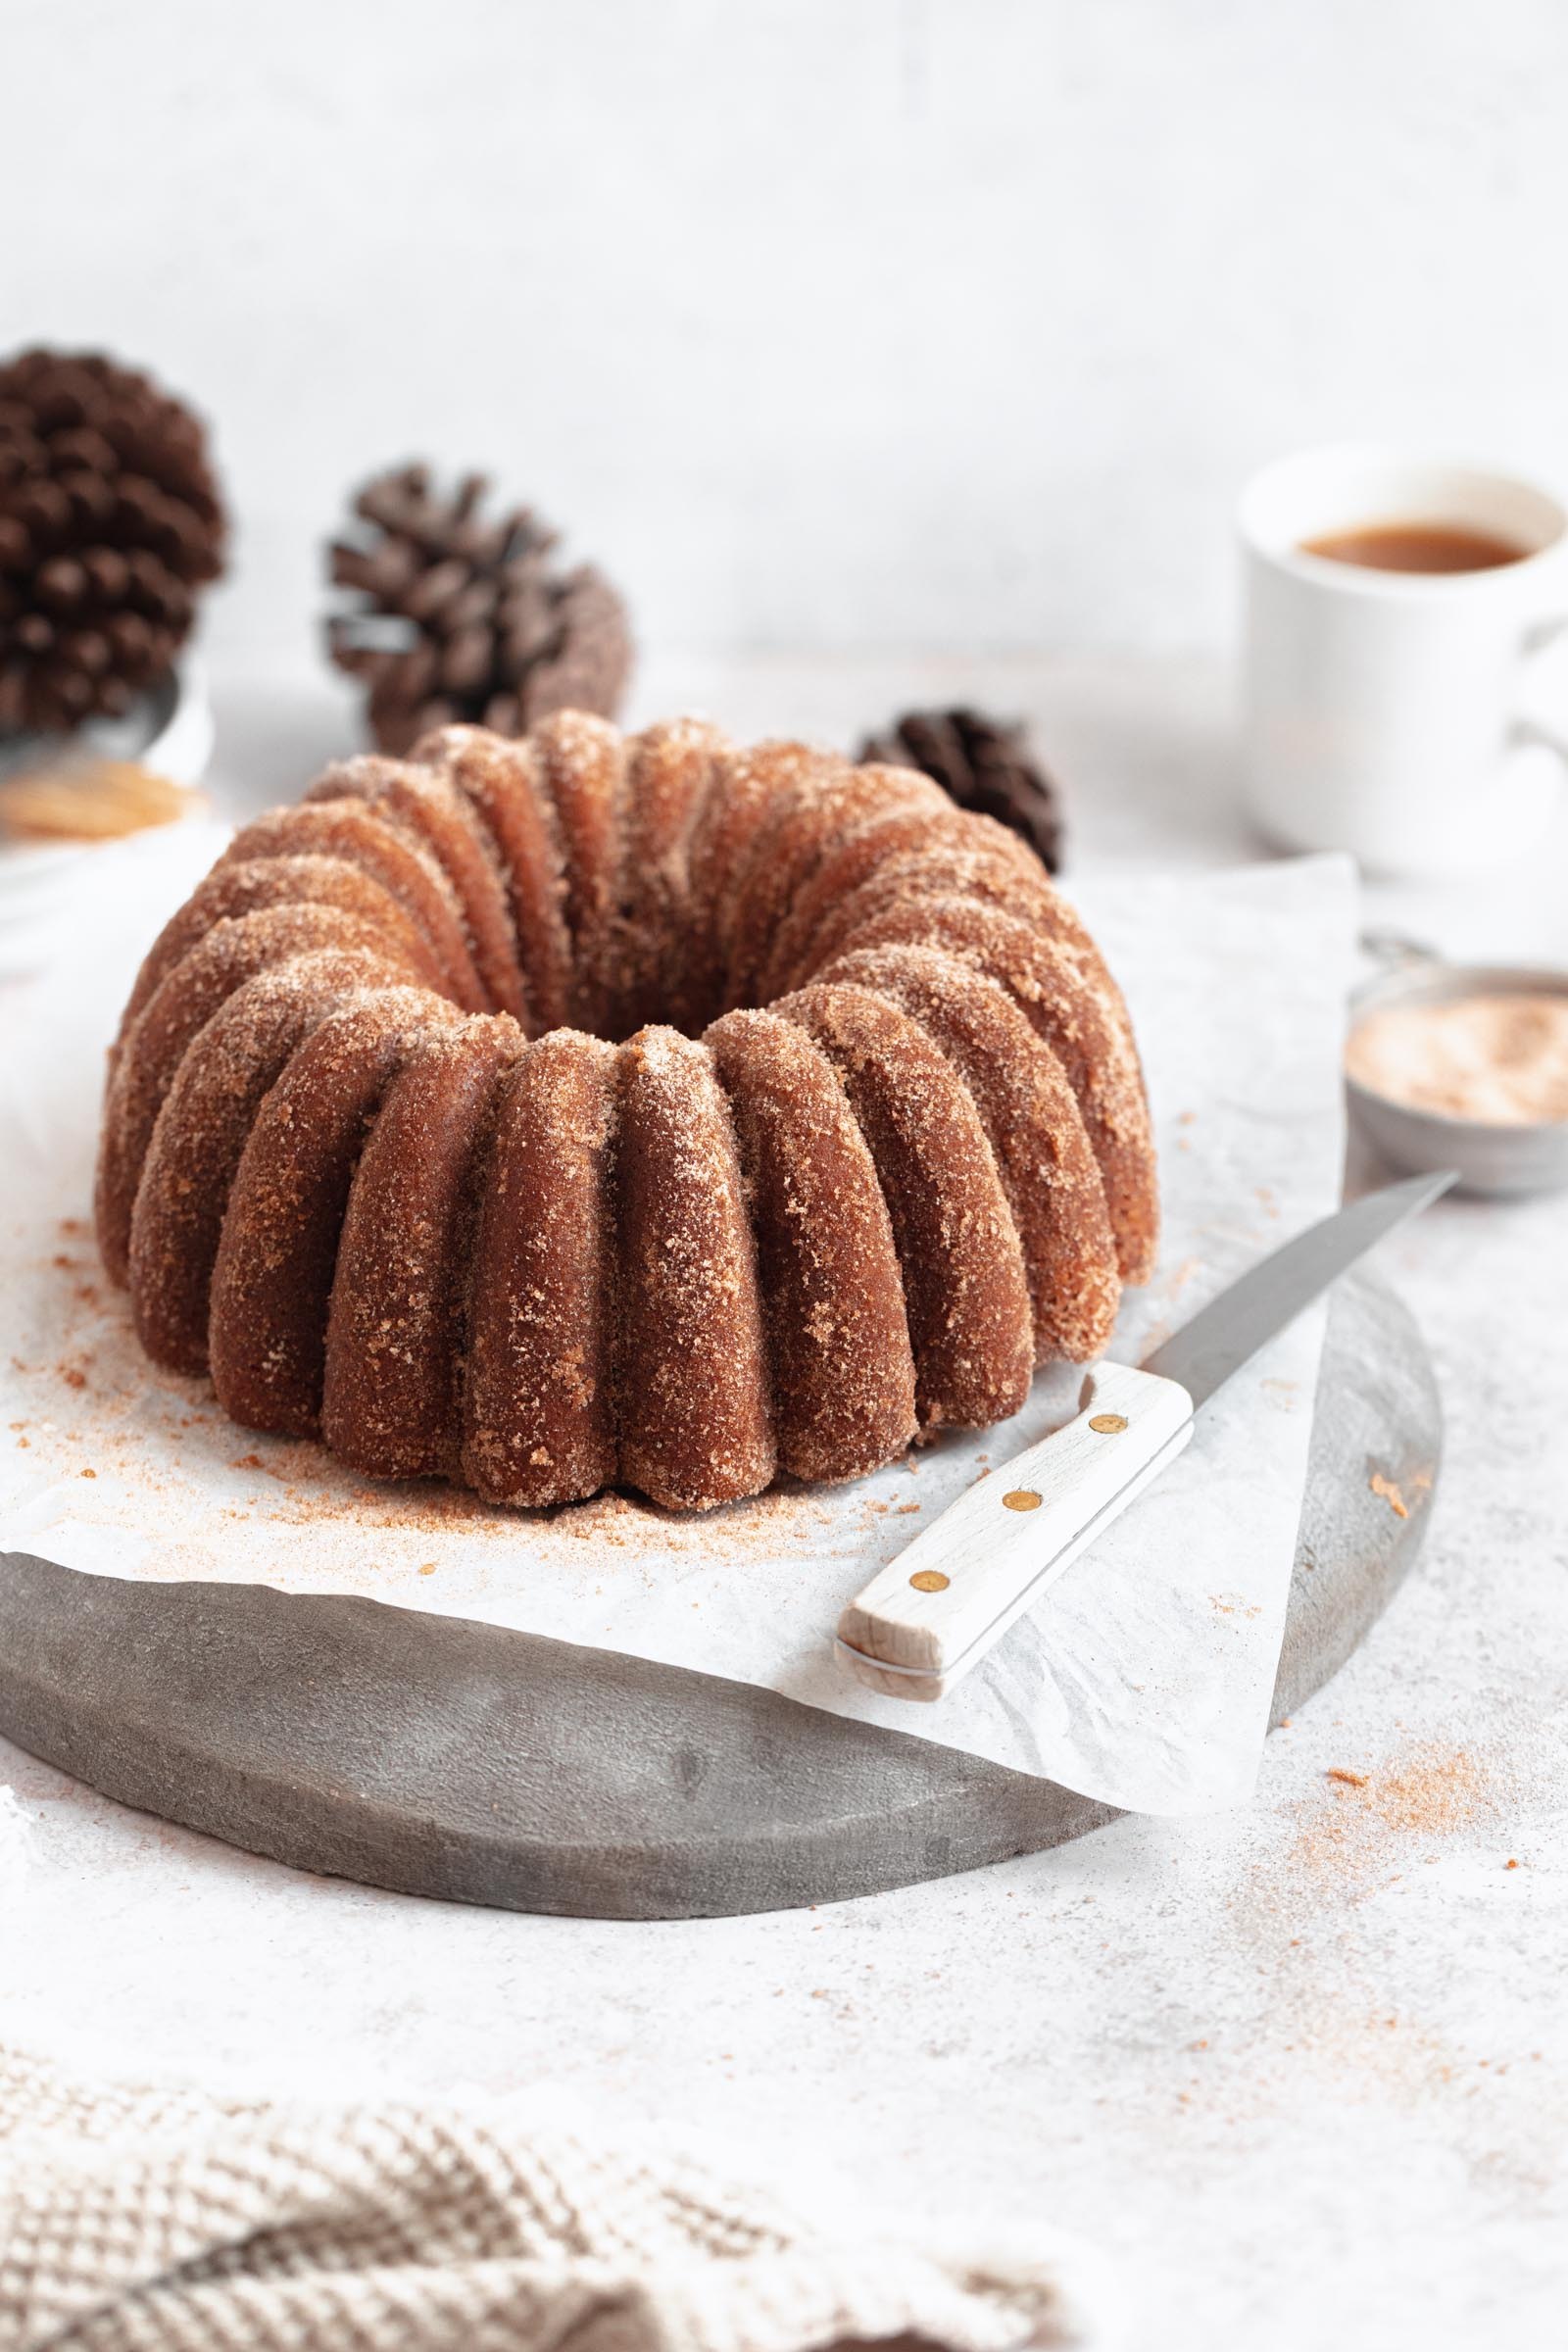 Apple Cider Donut Bundt Cake Recipe